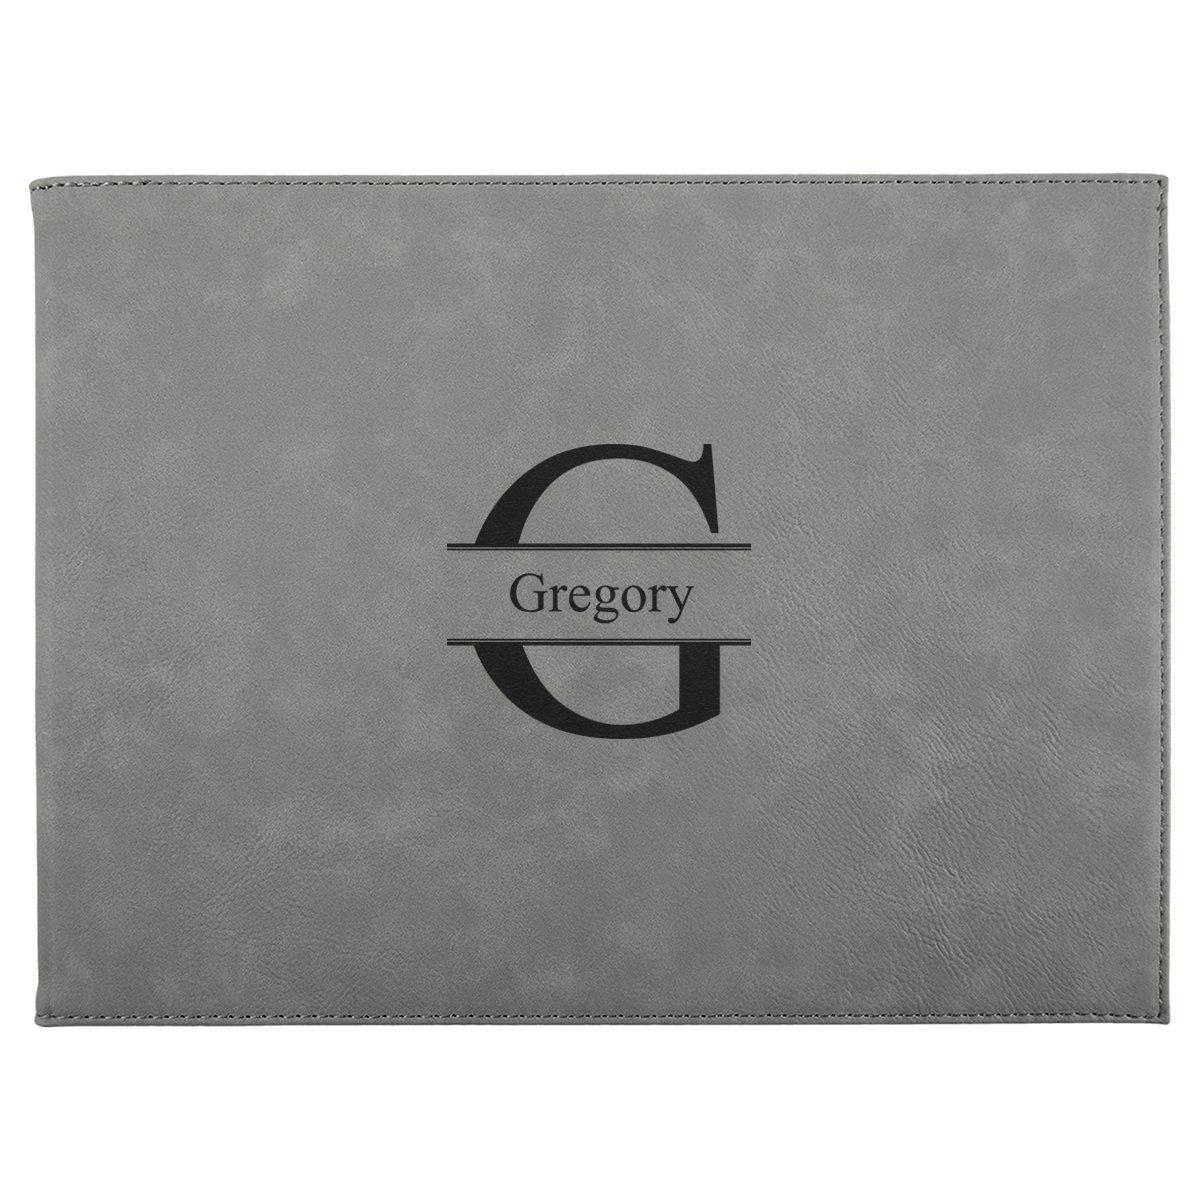 9? x 12? Personalized Certificate Holder - Gray